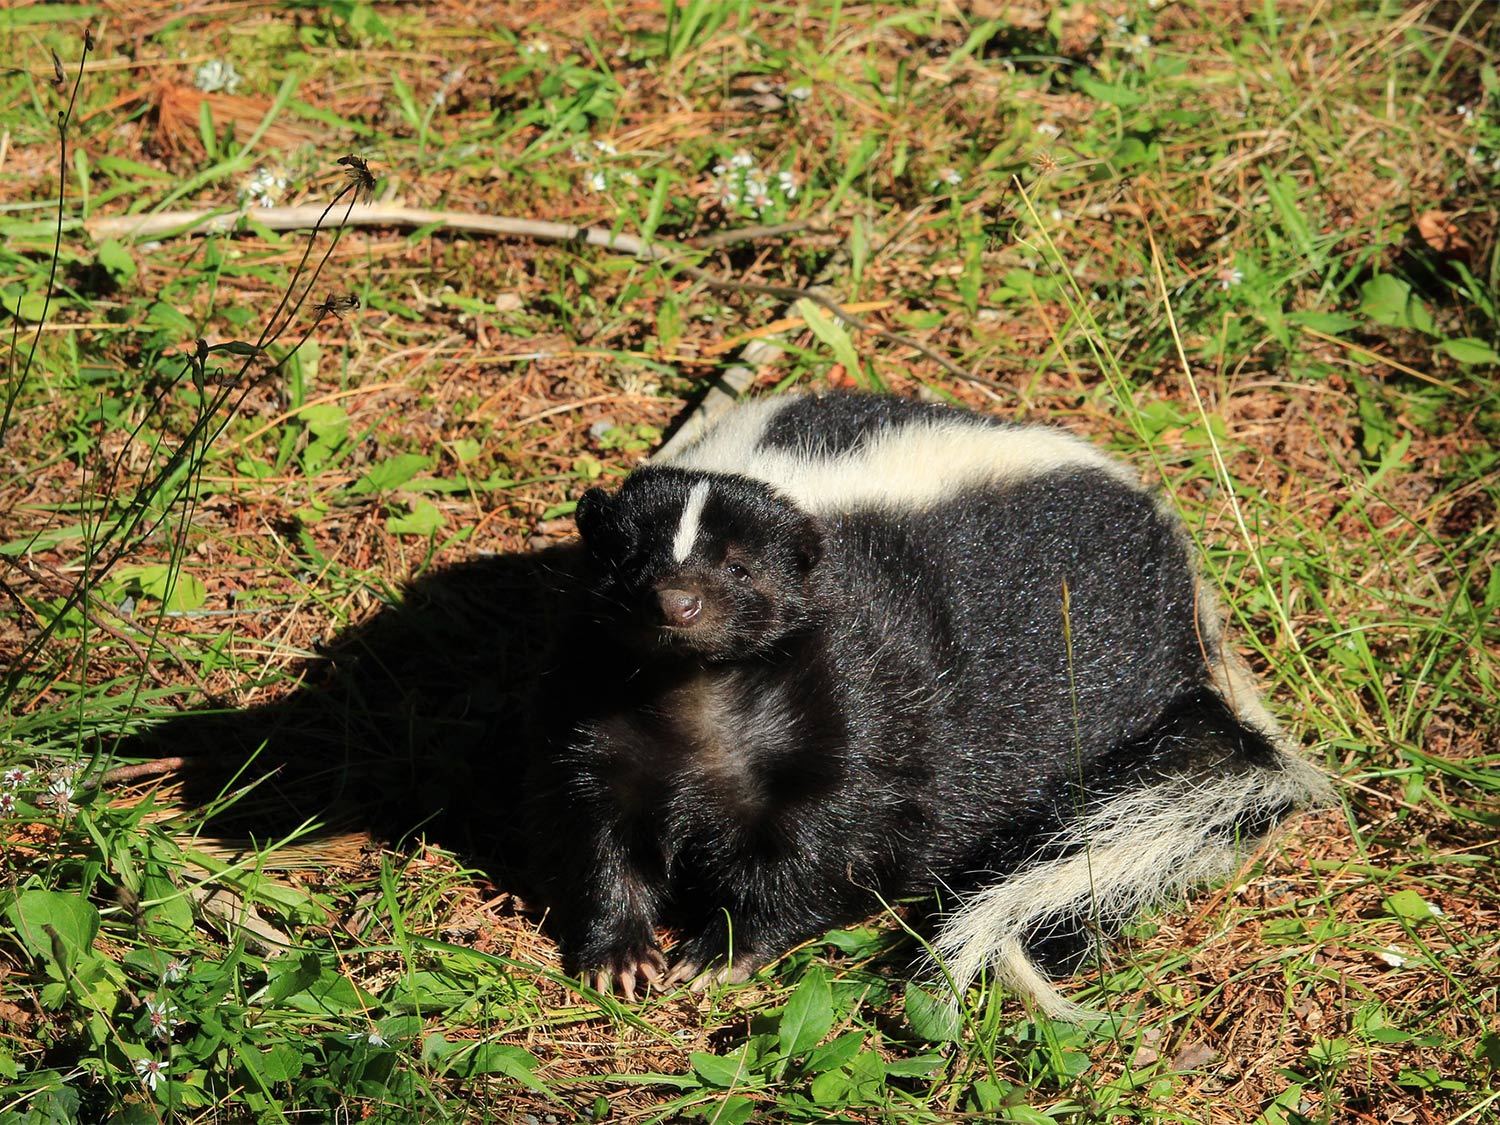 A skunk standing in the grass.